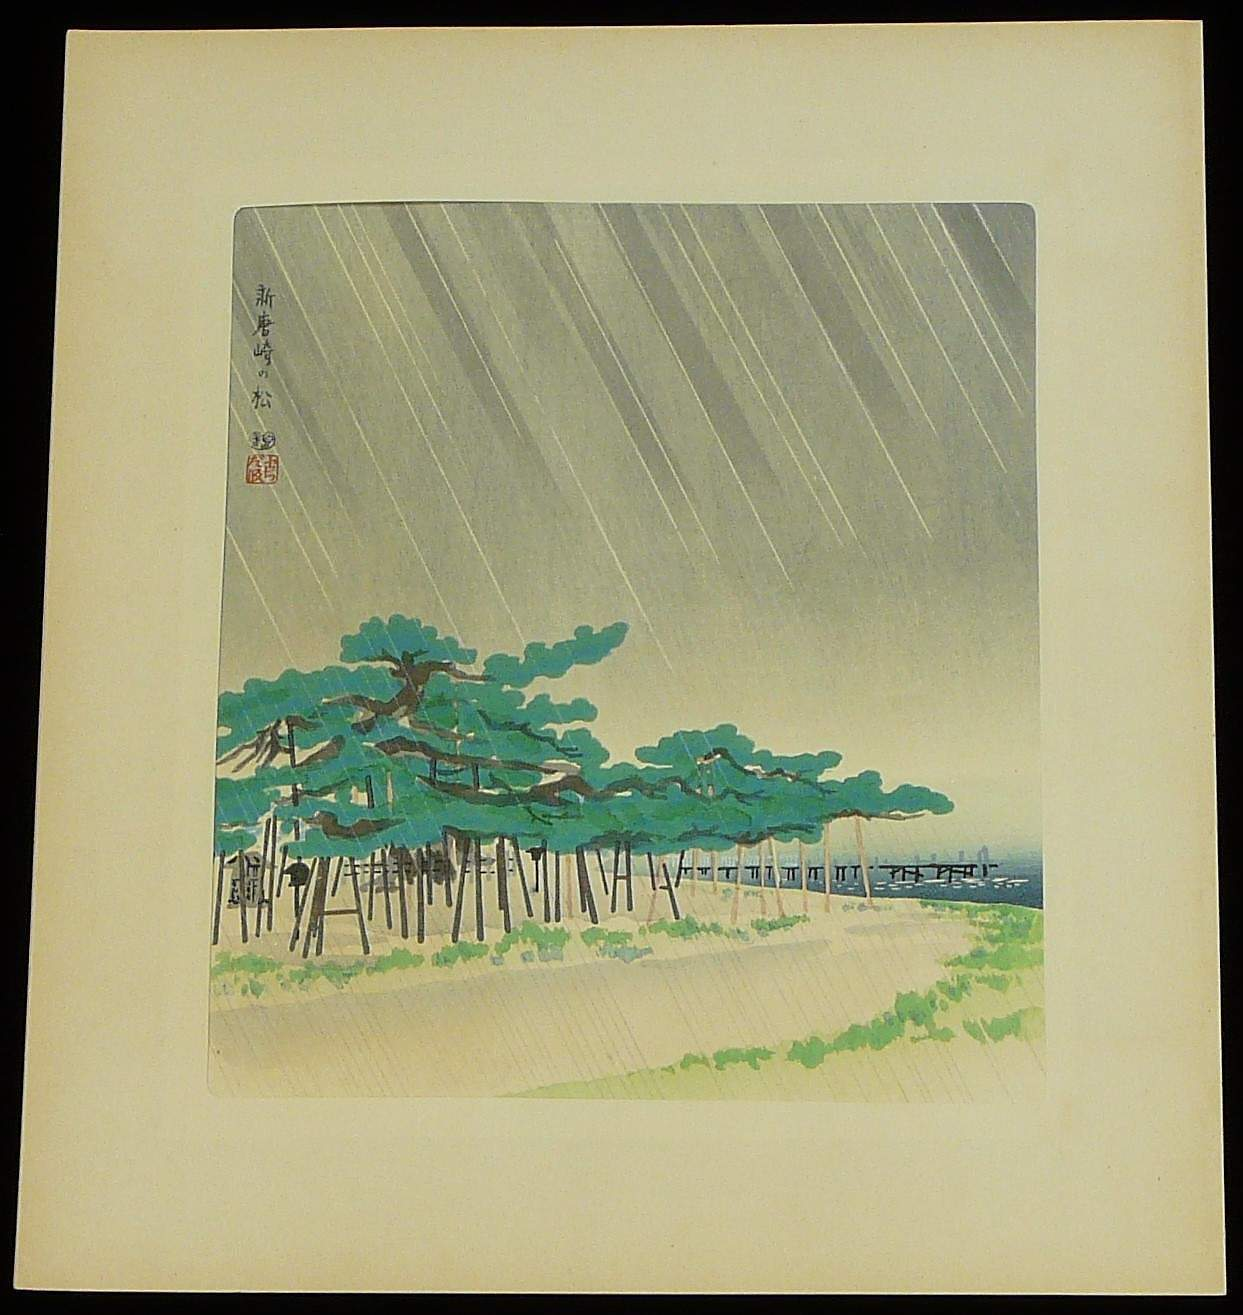 6. PINE TREES OF SHINKARASAKI